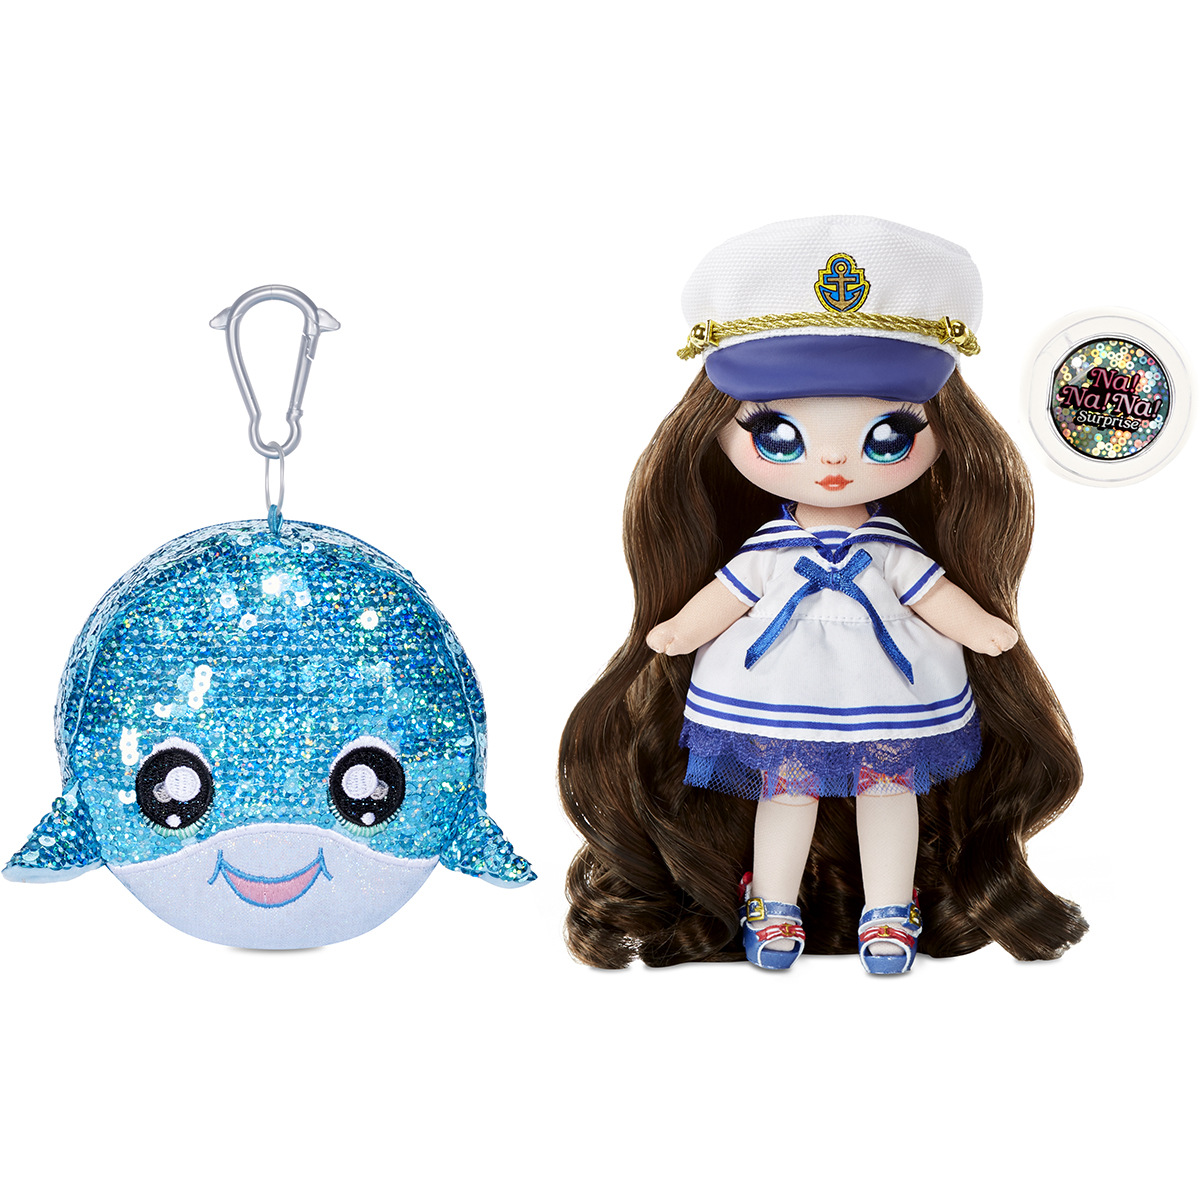 Na Na Na Surprise 2 in 1, Sparkle S1 - Papusa si accesoriu fashion, Sailor Blu, 573753